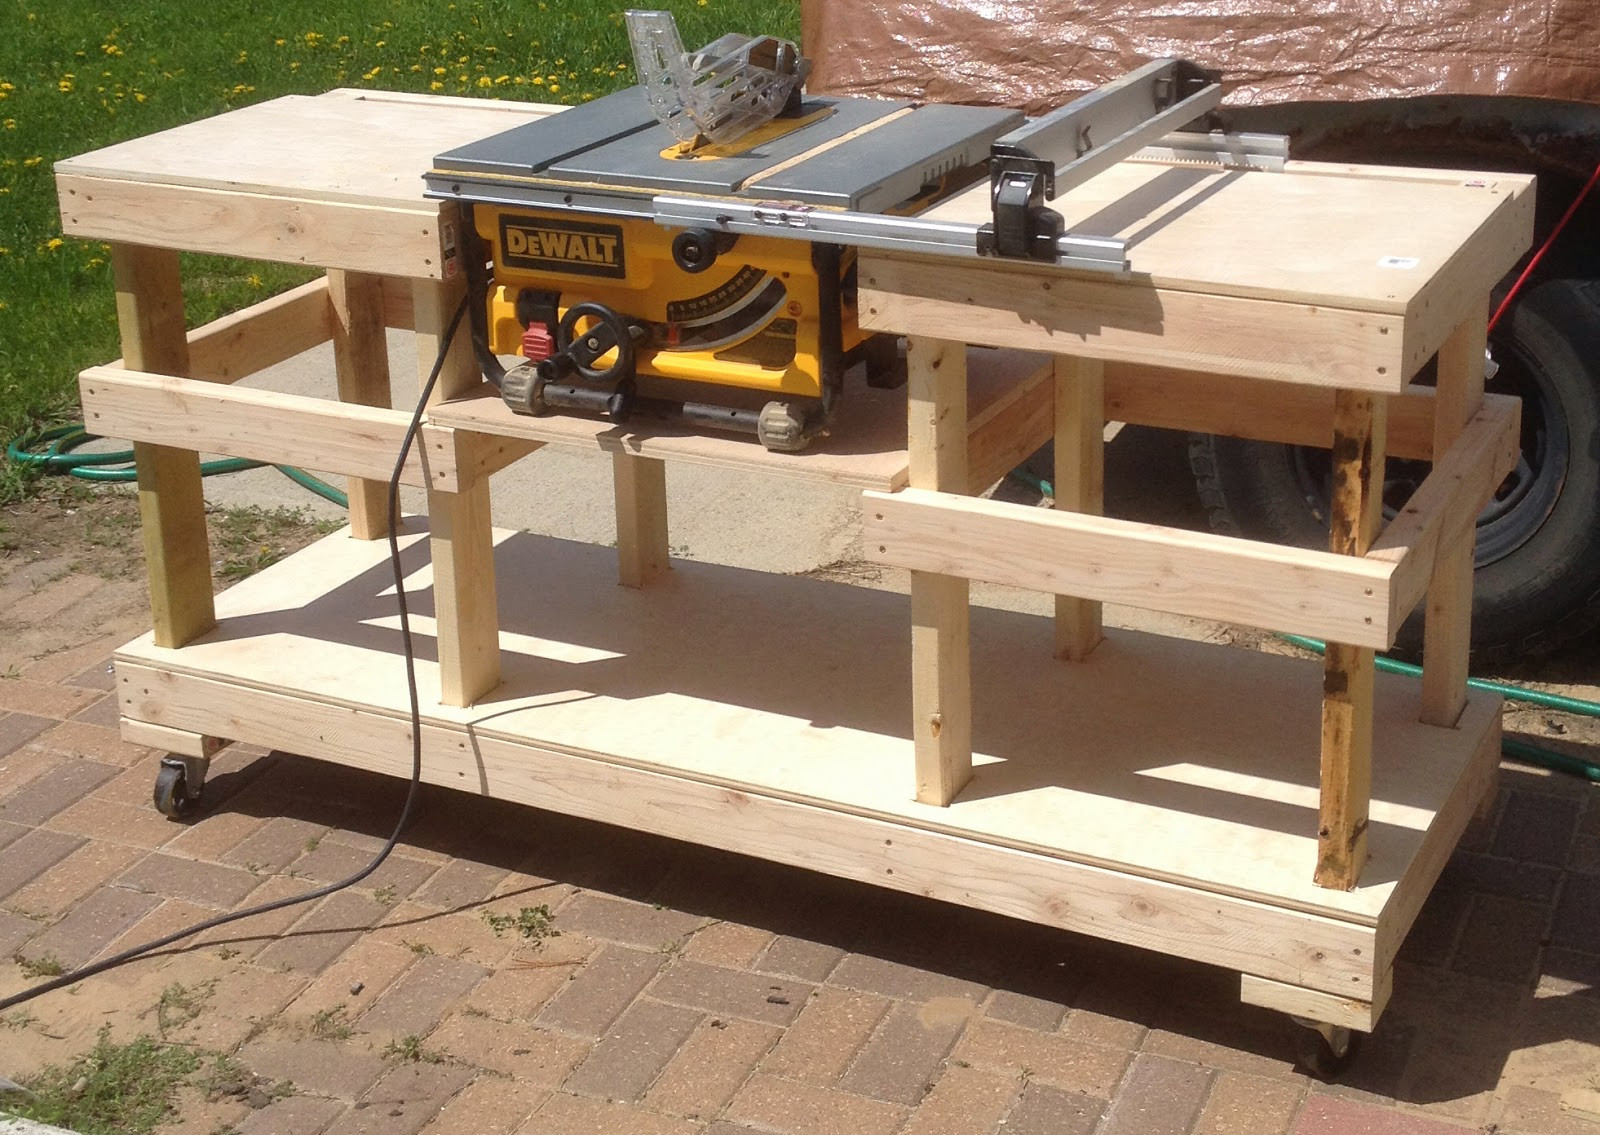 Best ideas about DIY Table Saw Stand Plans . Save or Pin DIY Table Saw Stand on Casters Now.